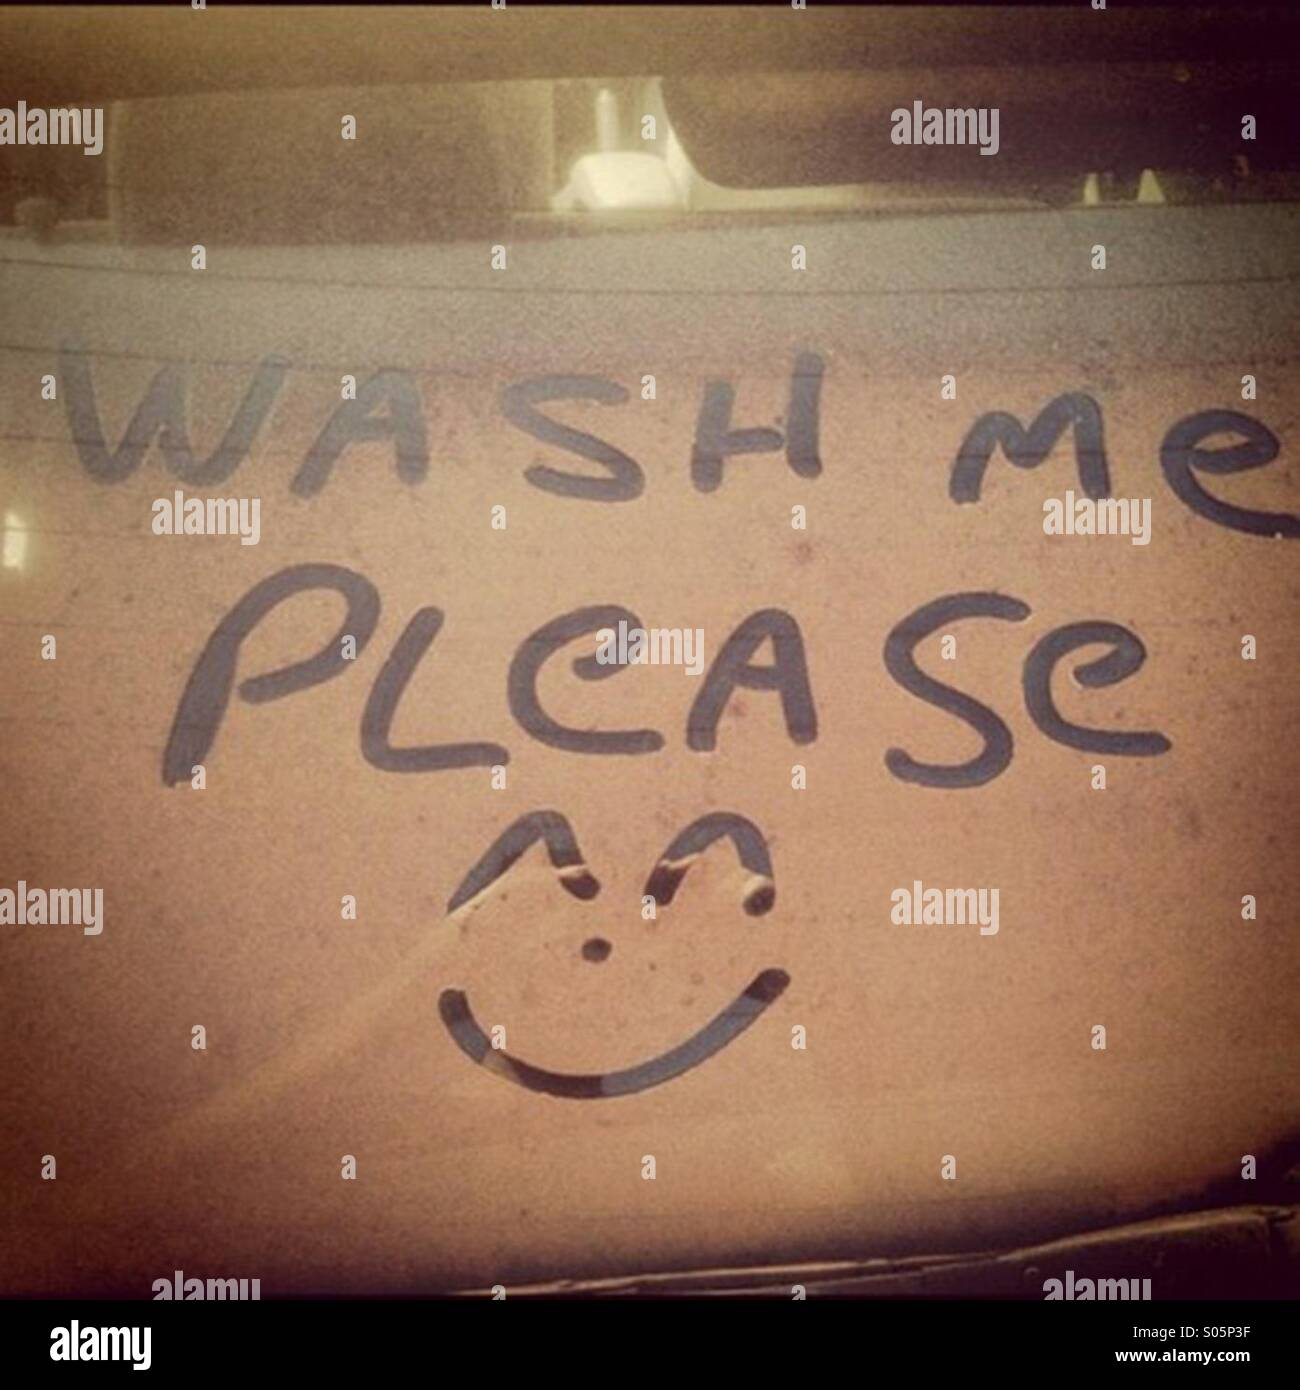 Wash Me Please Written Into Dirt On A Car Window Stock Photo